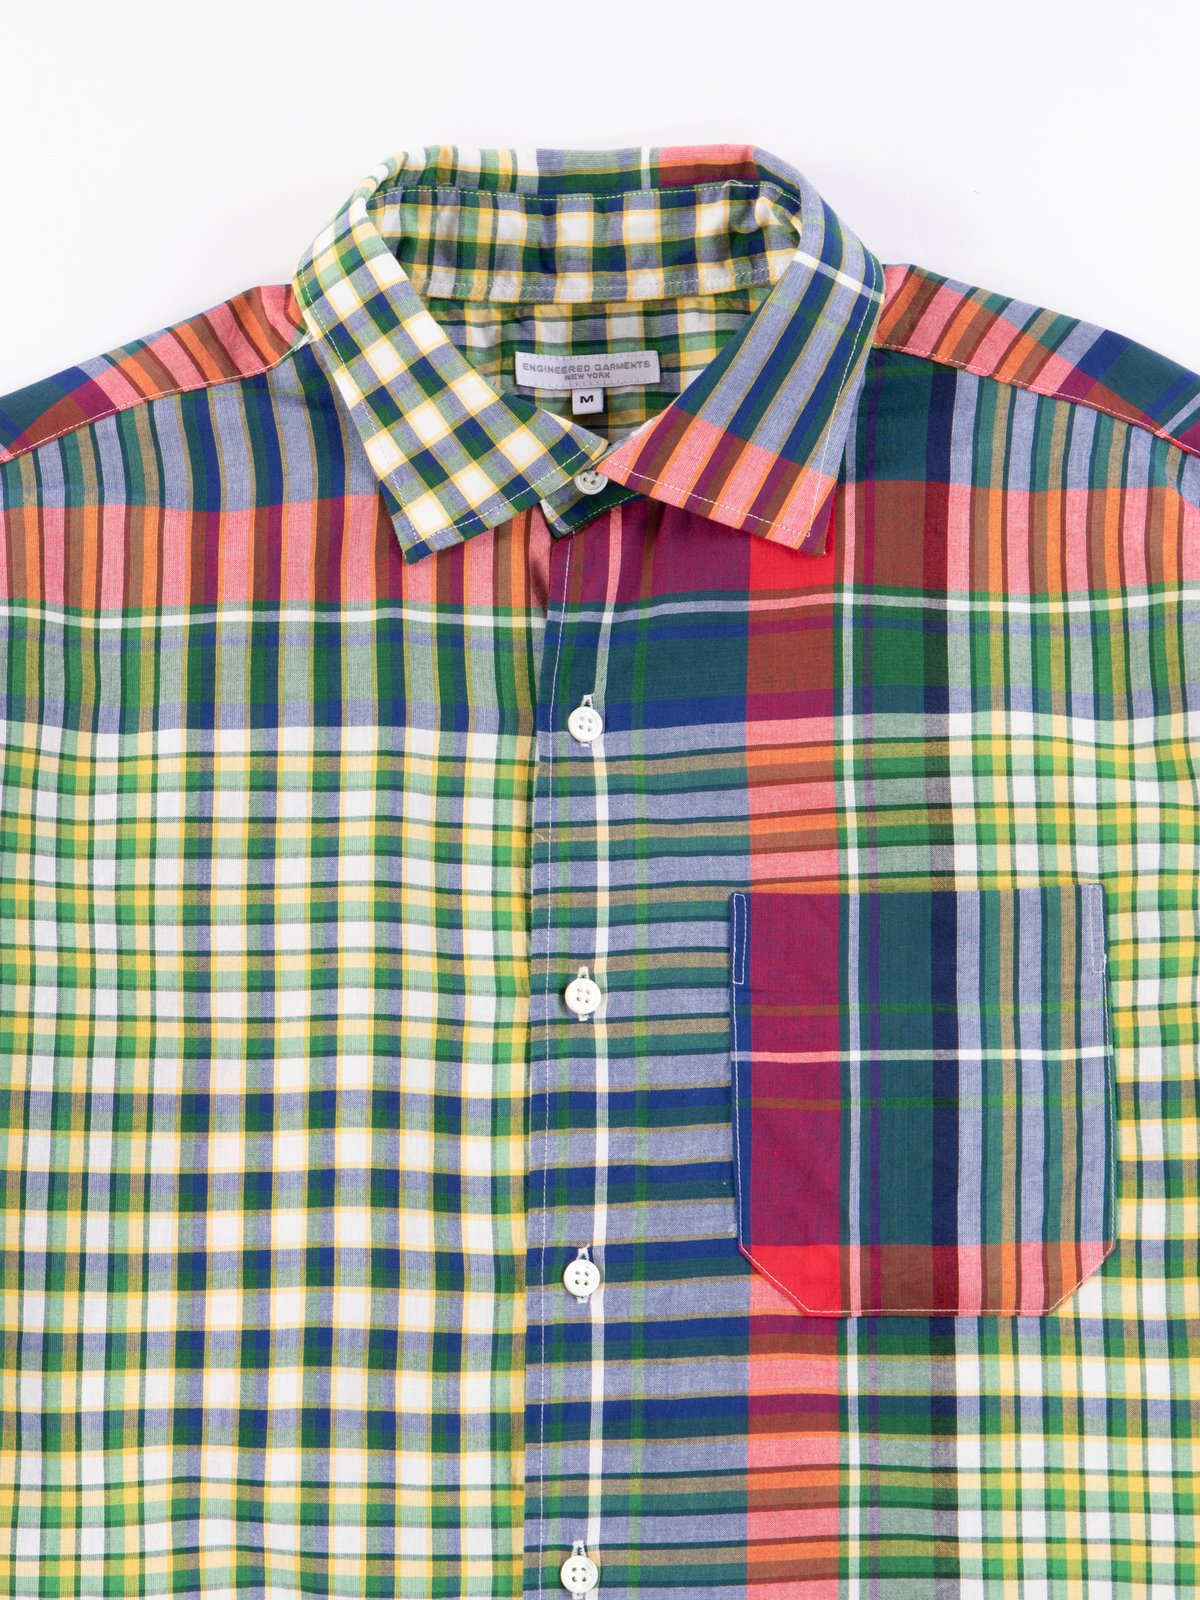 Red/Blue/Green Big Madras Plaid Spread Collar Shirt - Image 3